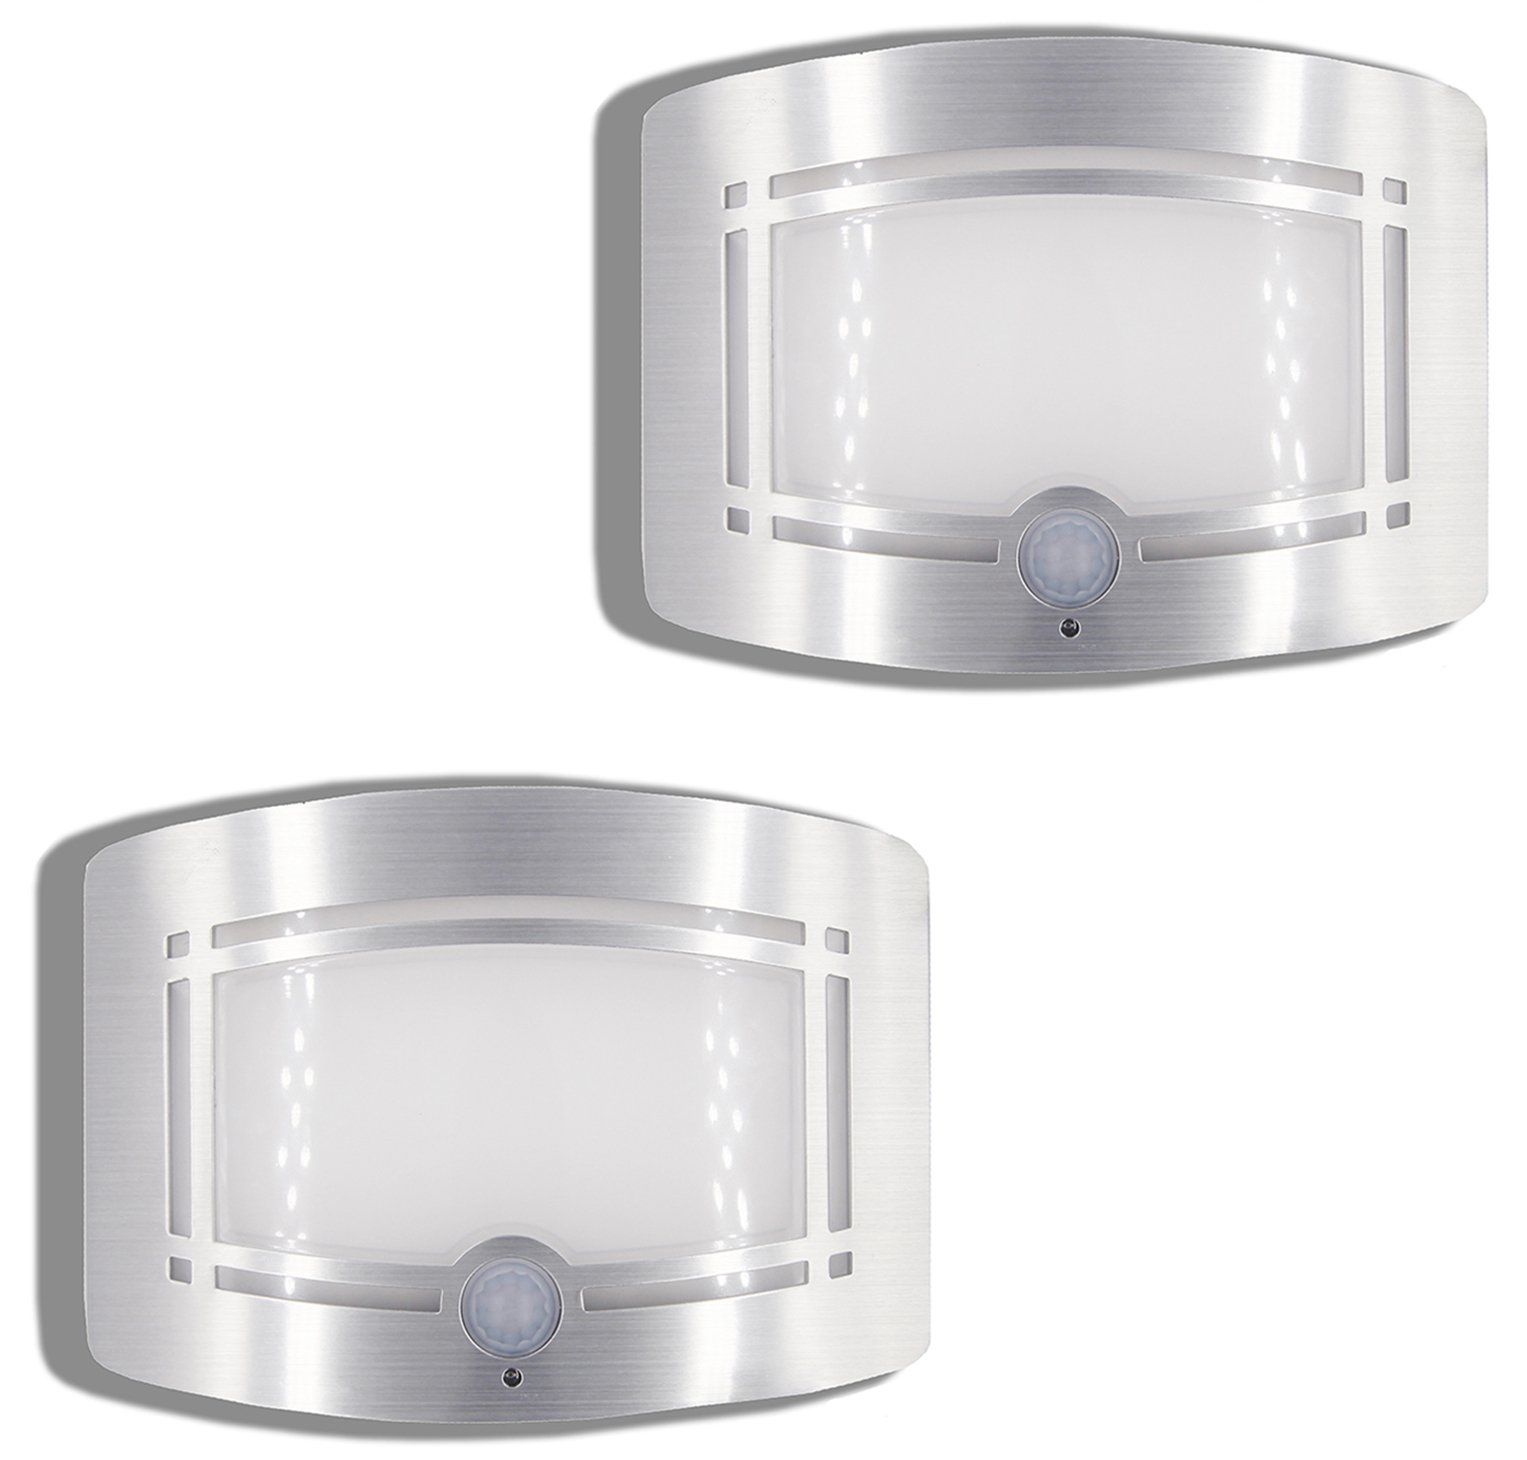 Led night light warm white - Motion Sensor Auto Led Night Light Warm White Wireless Wall Sconce Light Controlled By Motion